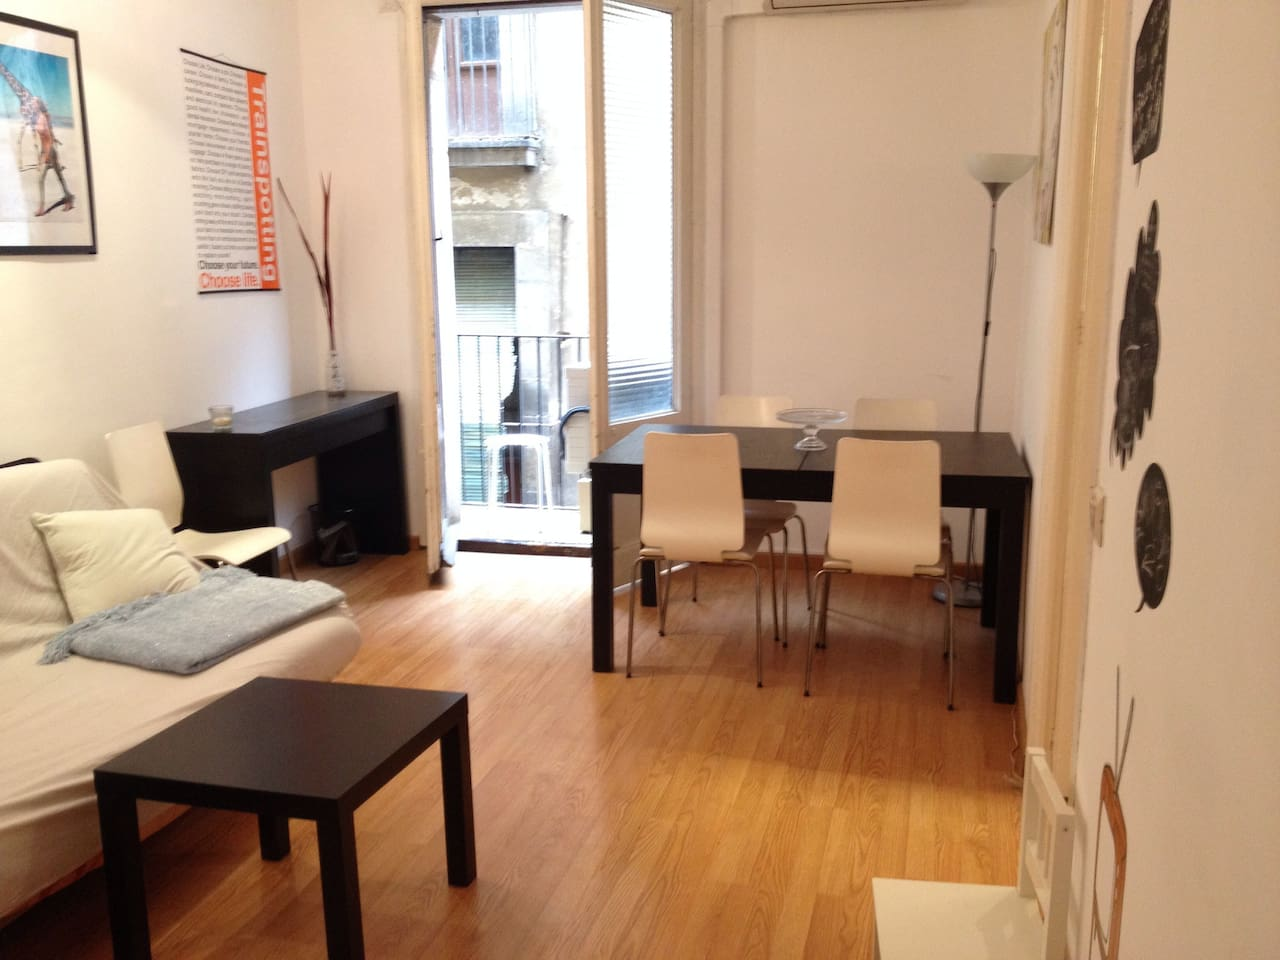 WONDERFUL 80 sqm apartment in BORN with 2 bedrooms with queen size beds, two living rooms and two bathrooms